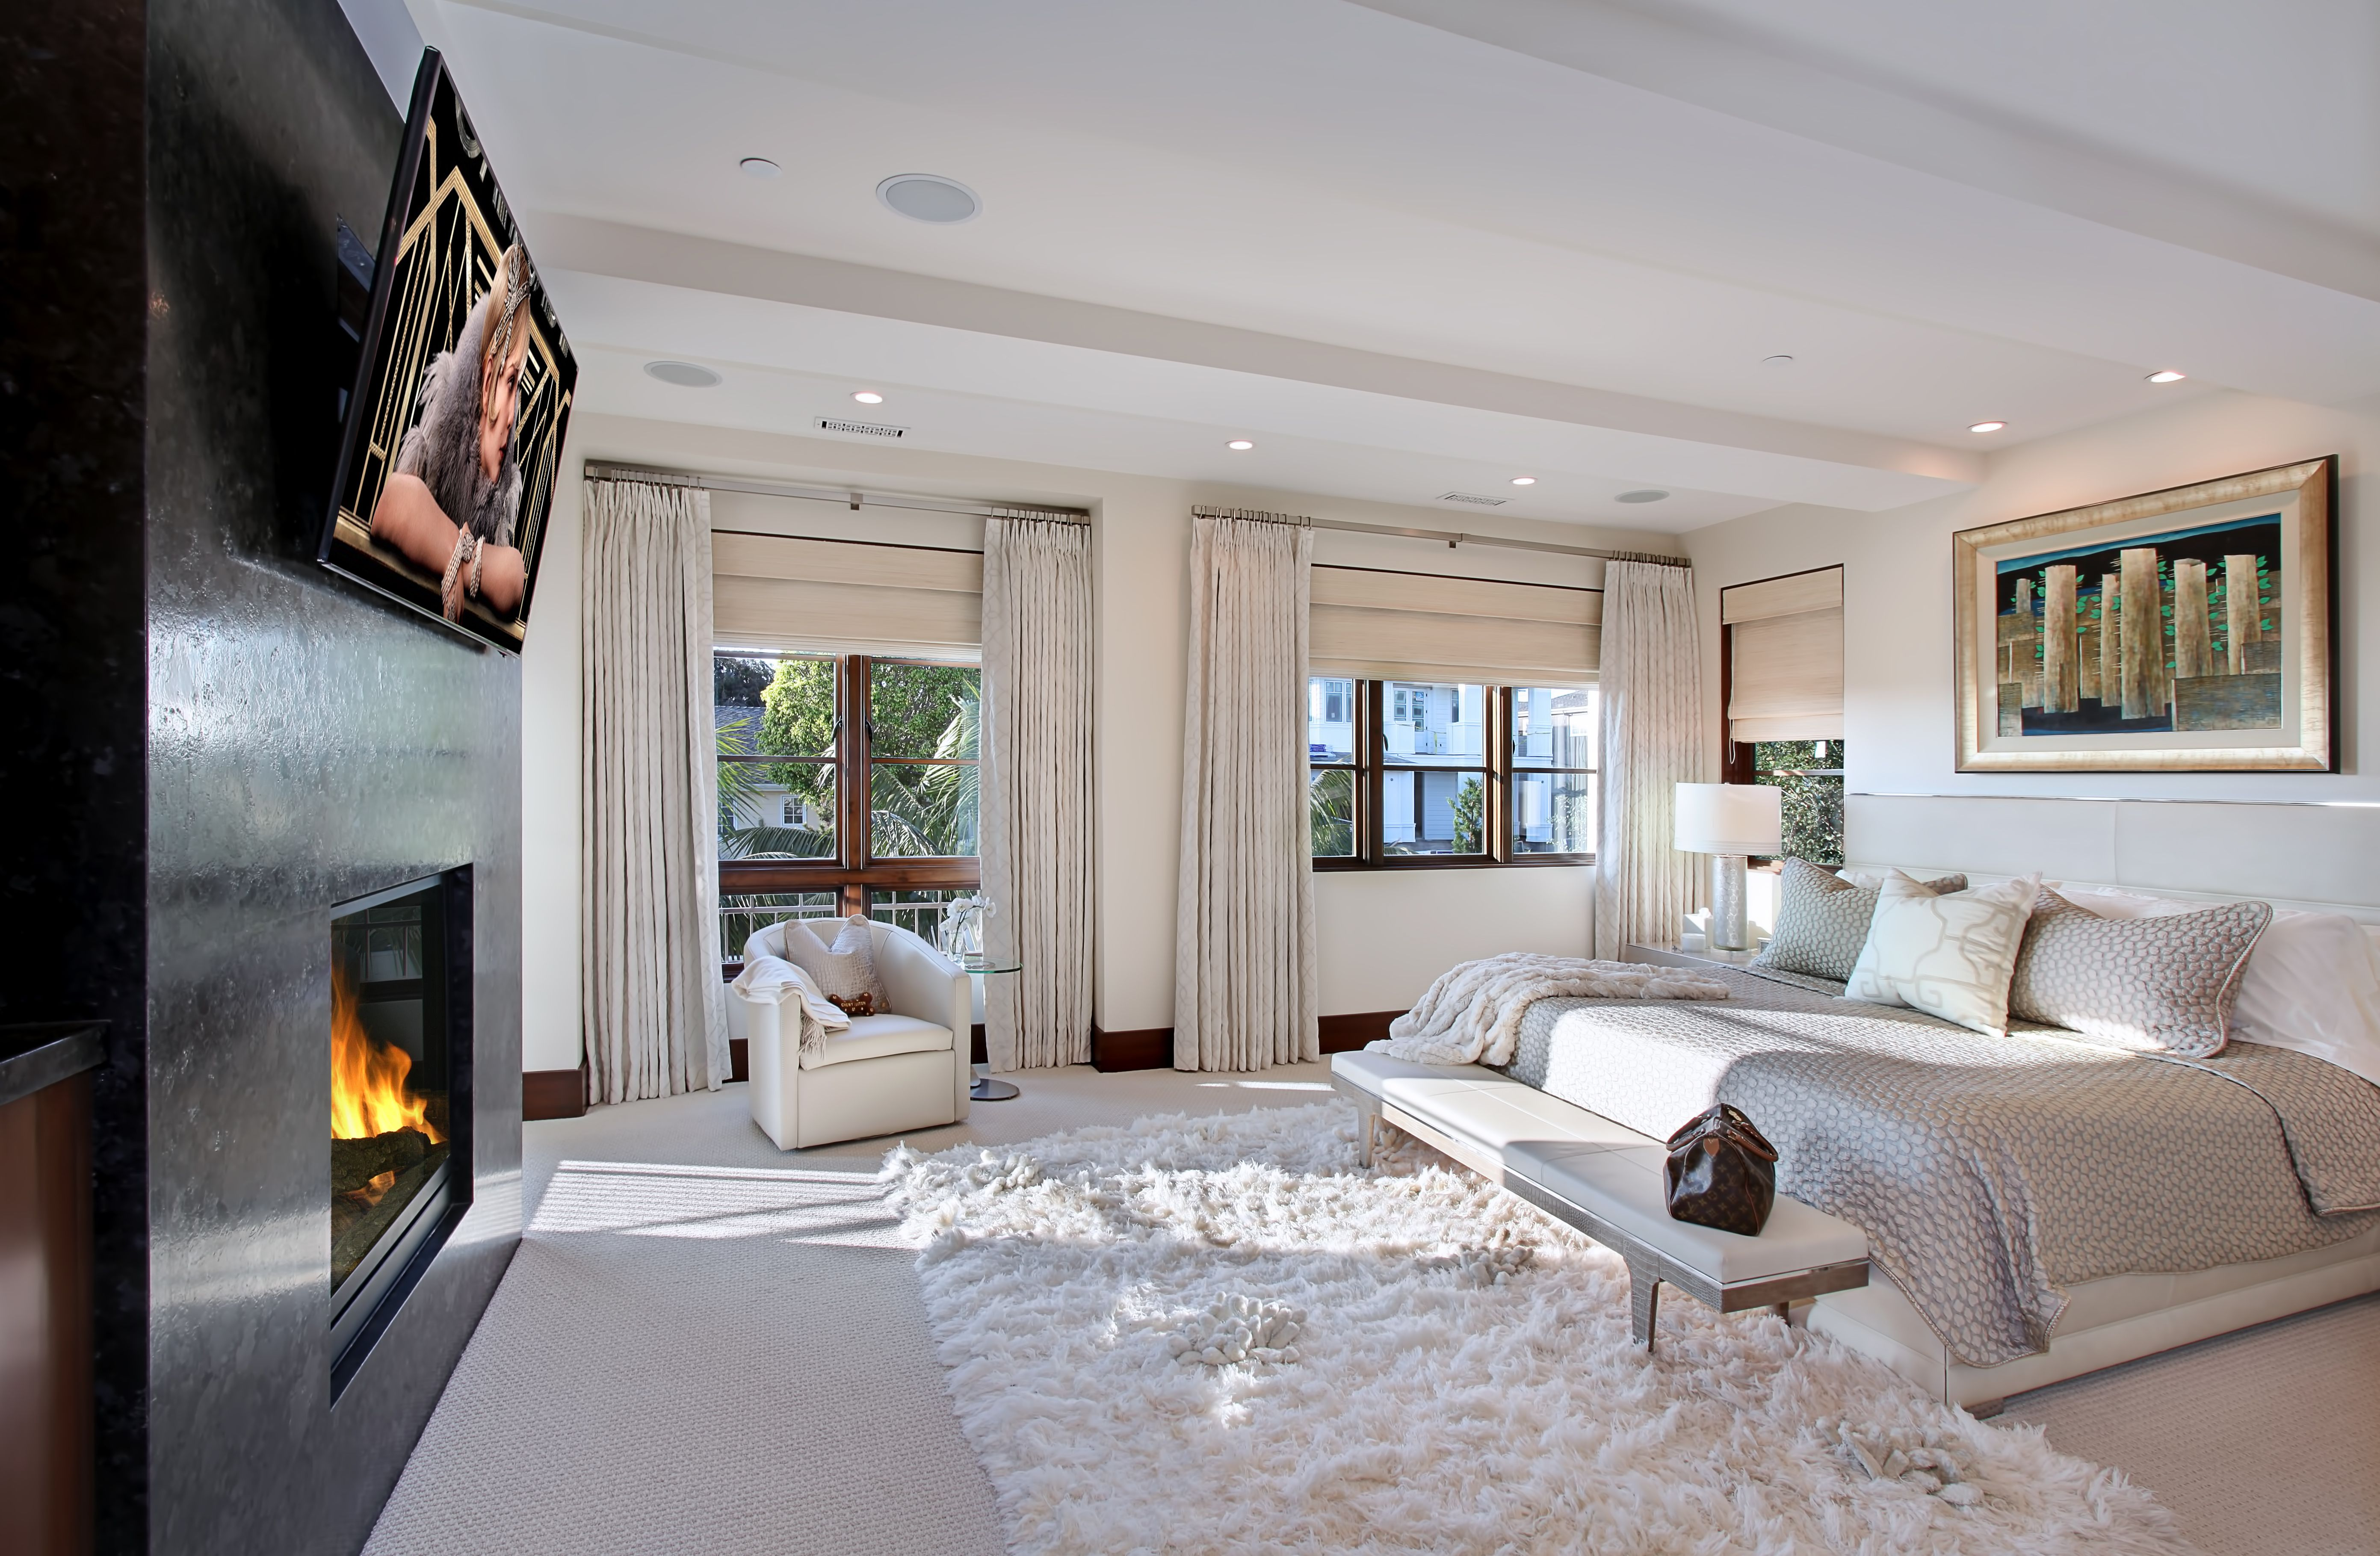 Subtle colors and lots of windows make this bedroom a dream to be in ...